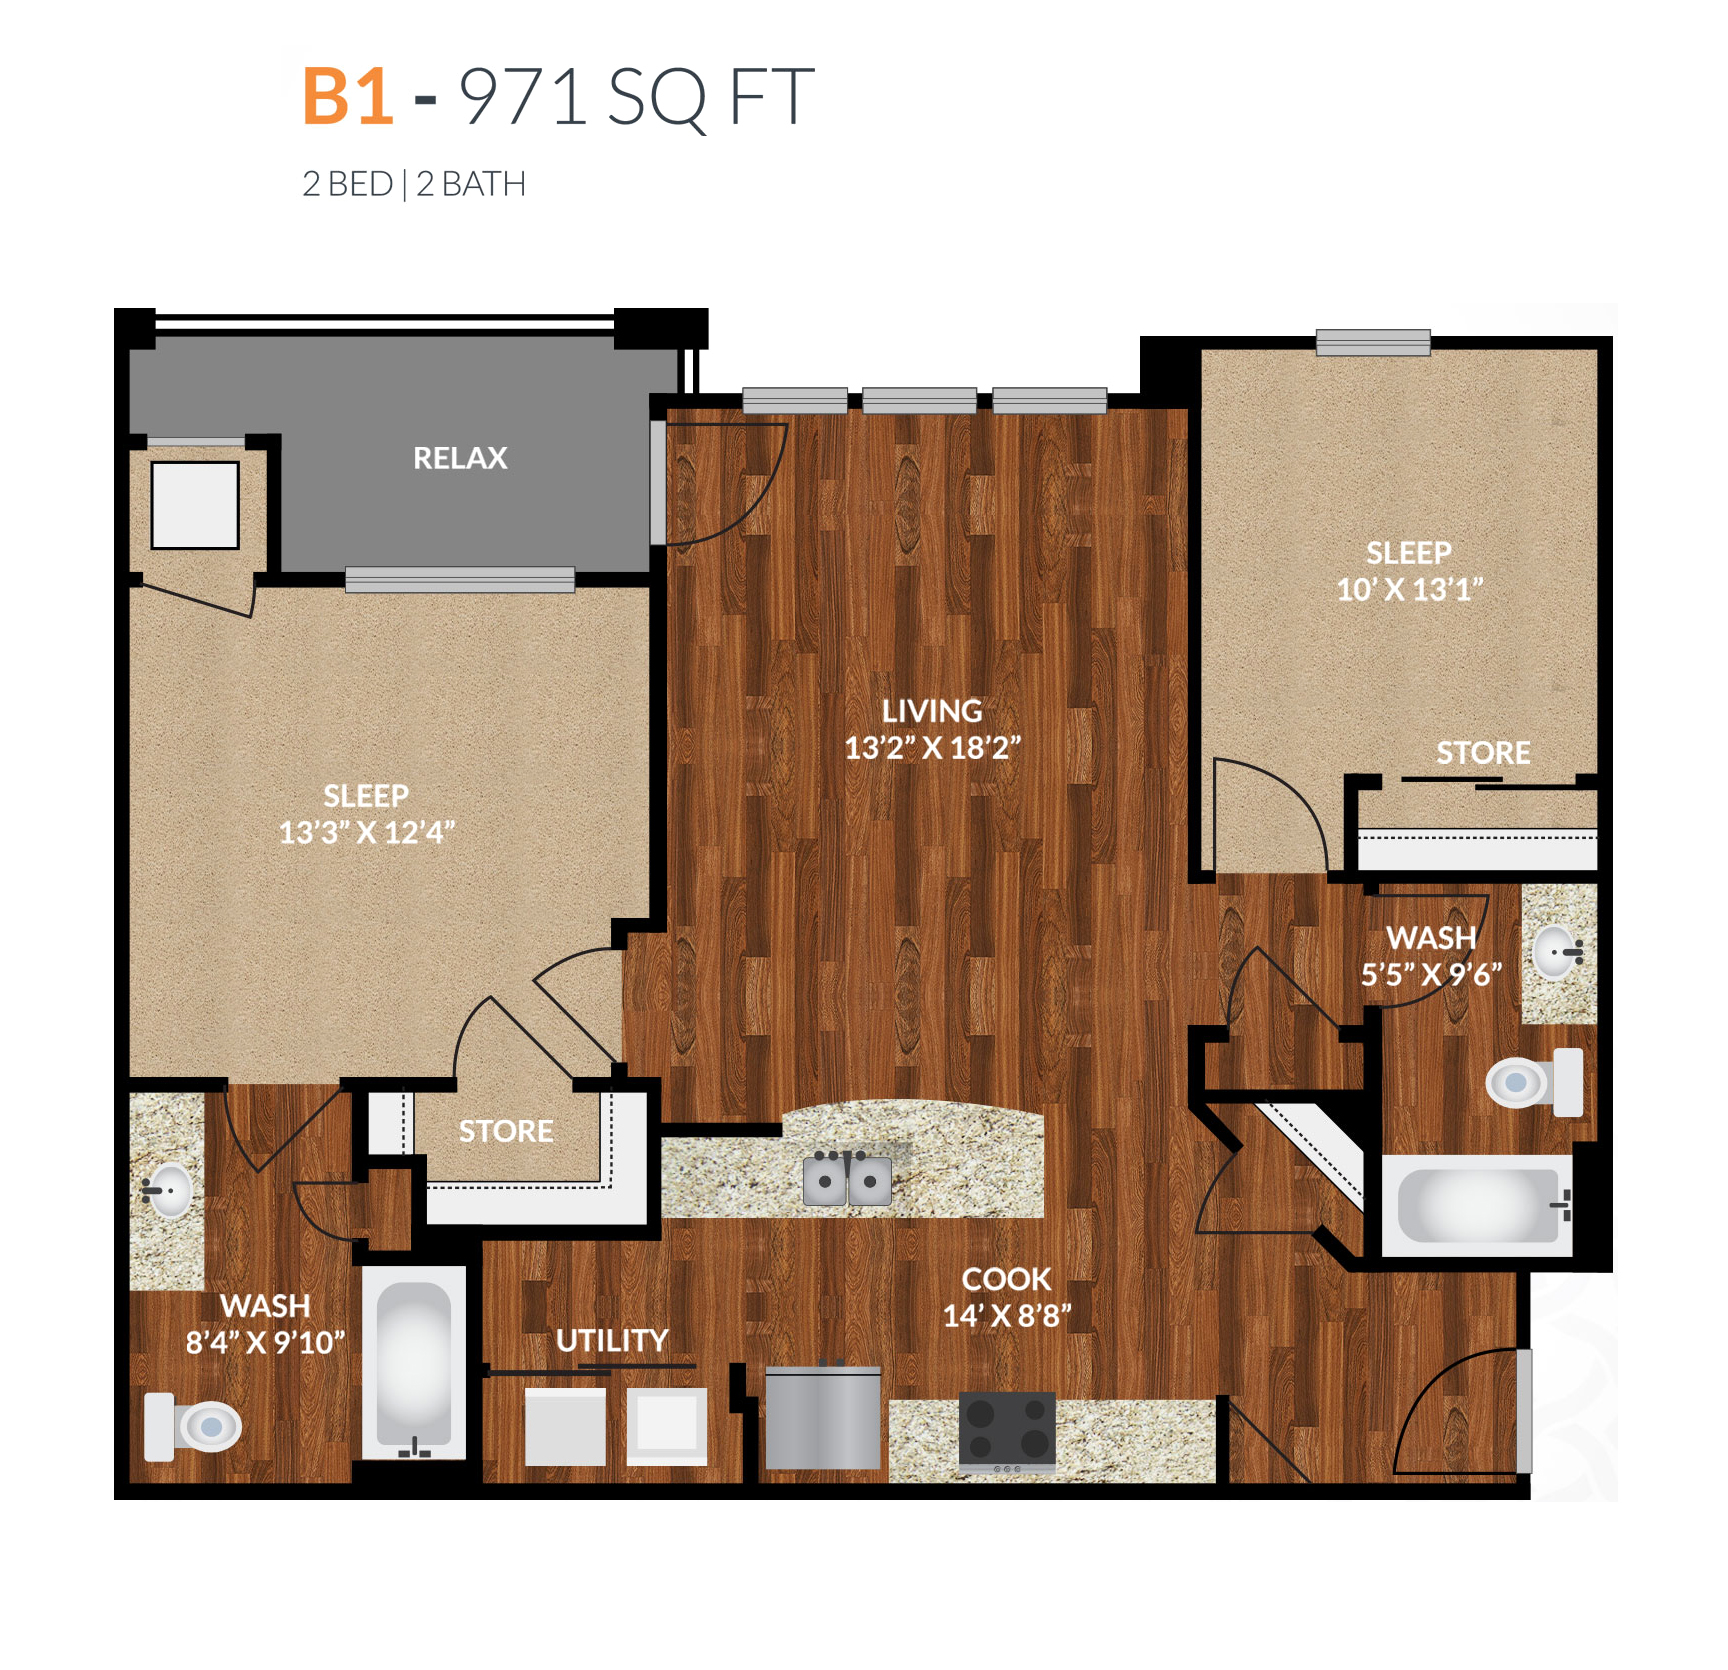 4 bedroom homes for rent in chicago il 4 best home and cheap one bedroom apartments home and design life style